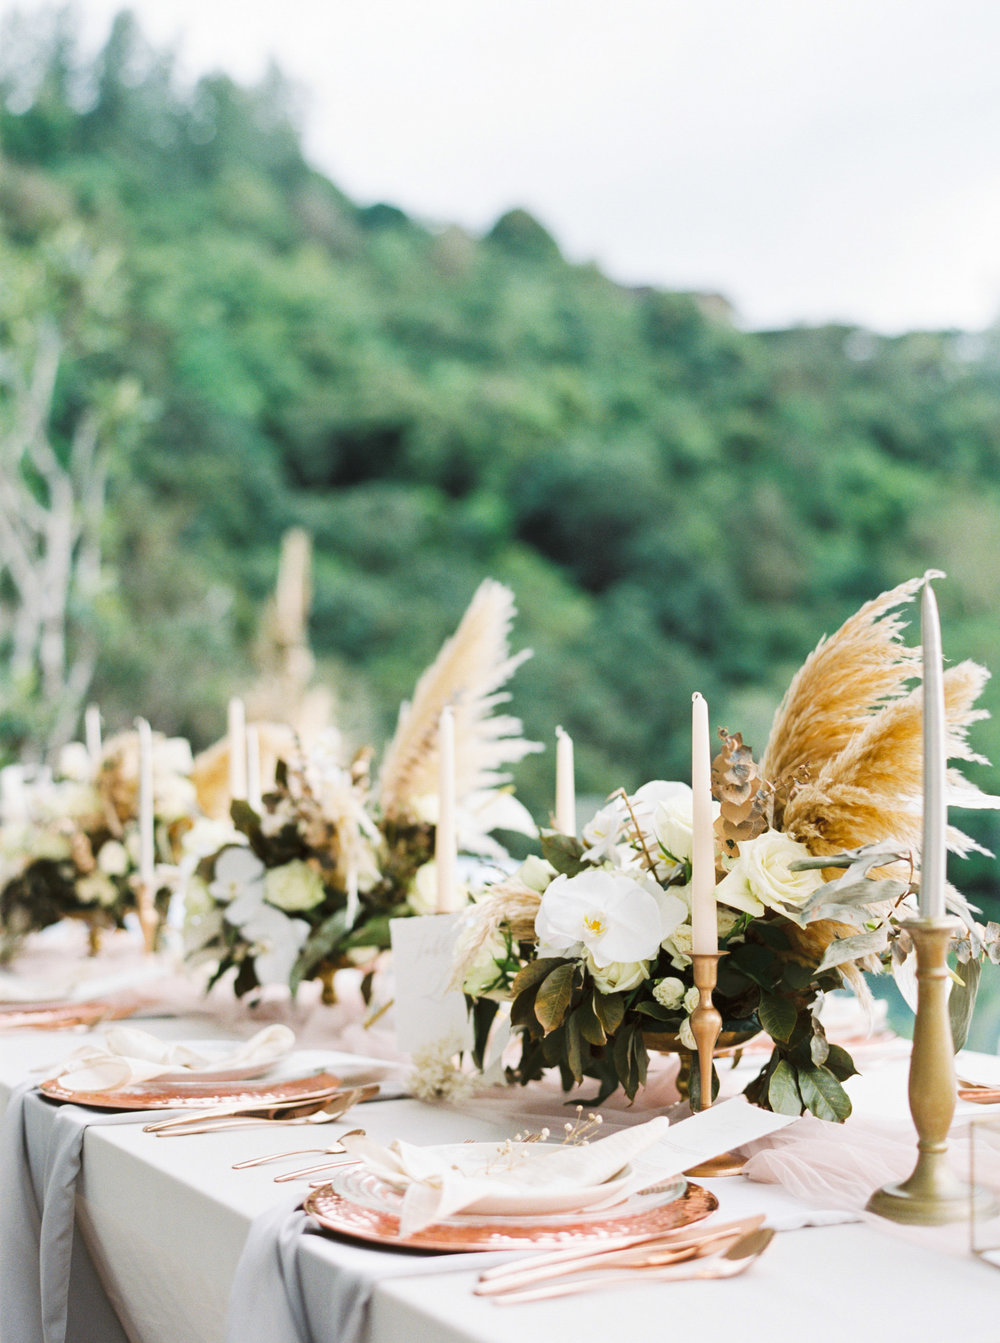 Destination Wedding Phuket Thailand Fine Art Film Photographer Sheri McMahon-00056-56.jpg